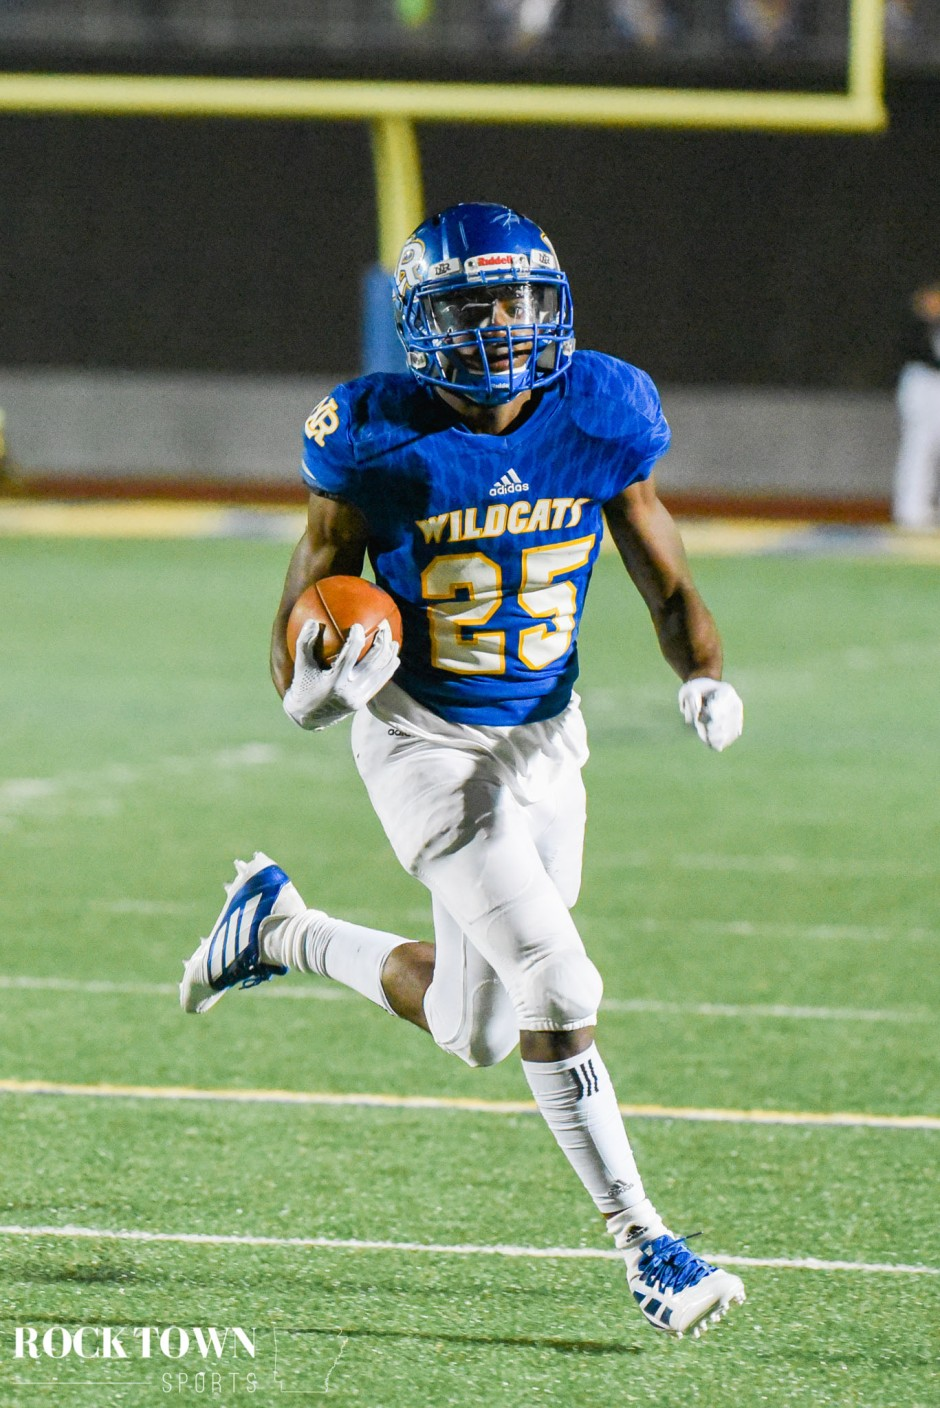 NLR_conway_football2019(i)-31